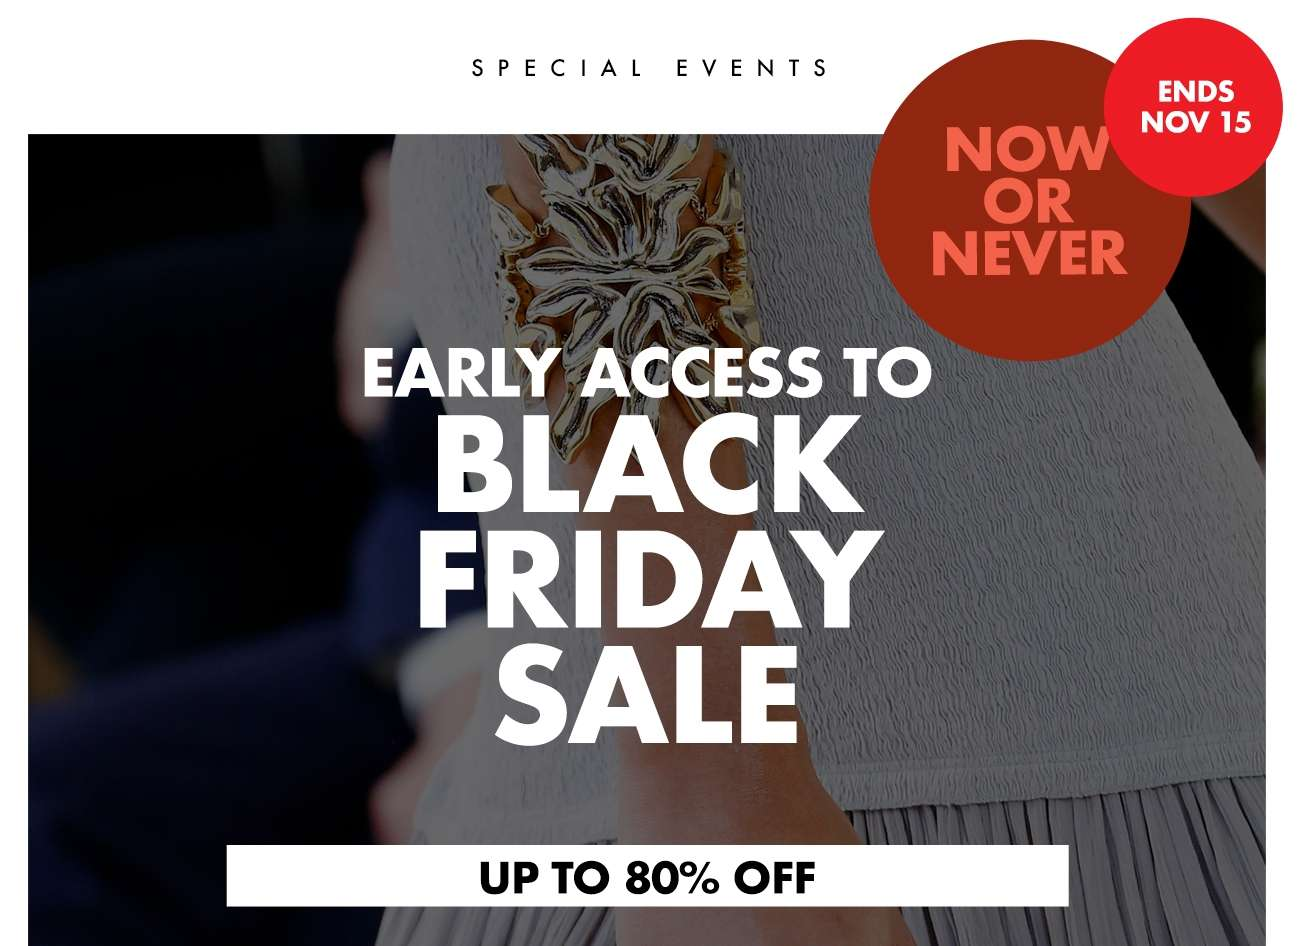 EARLY ACCESS TO BLACK FRIDAY SALE